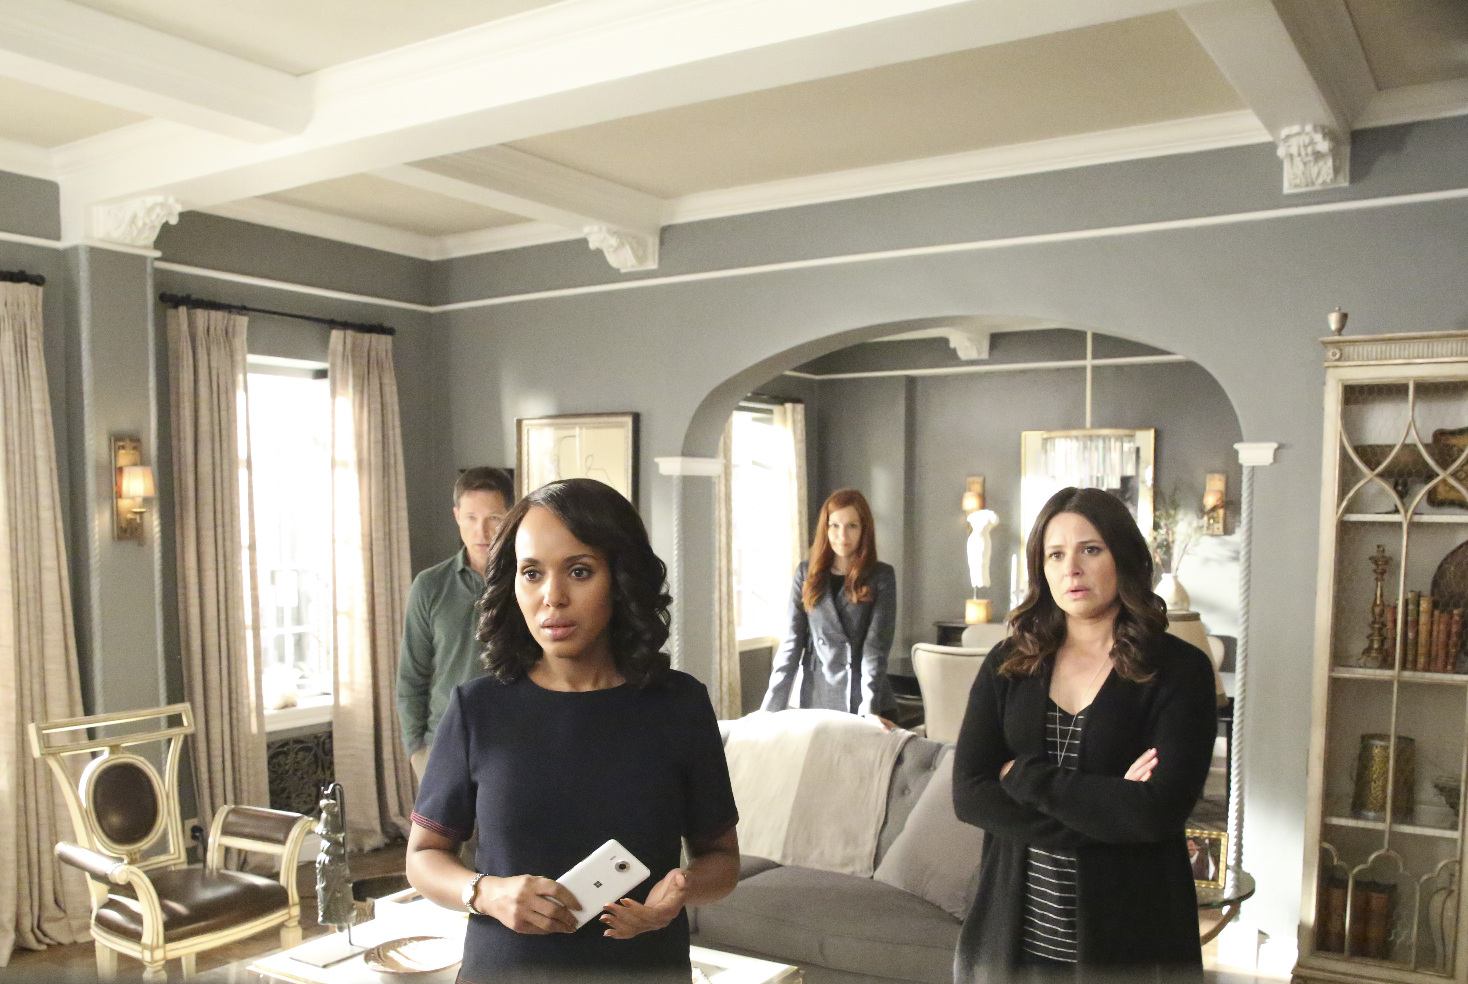 George Newbern, Kerry Washington, Darby Stanchfield, and Katie Lowes in Scandal (2012)